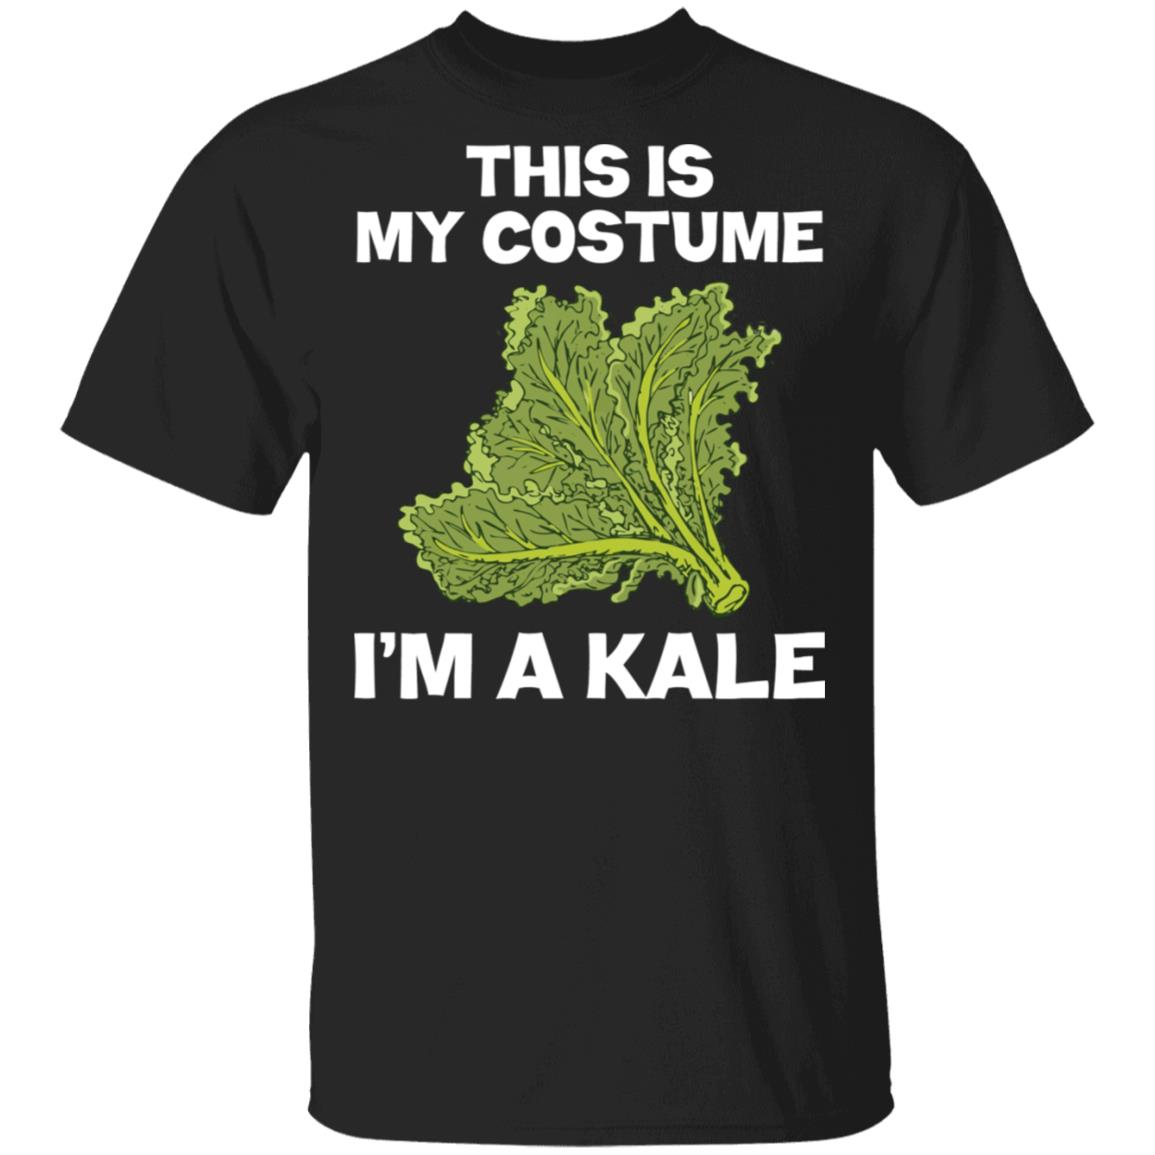 I'm A Kale This Is My Costume Unisex Short Sleeve